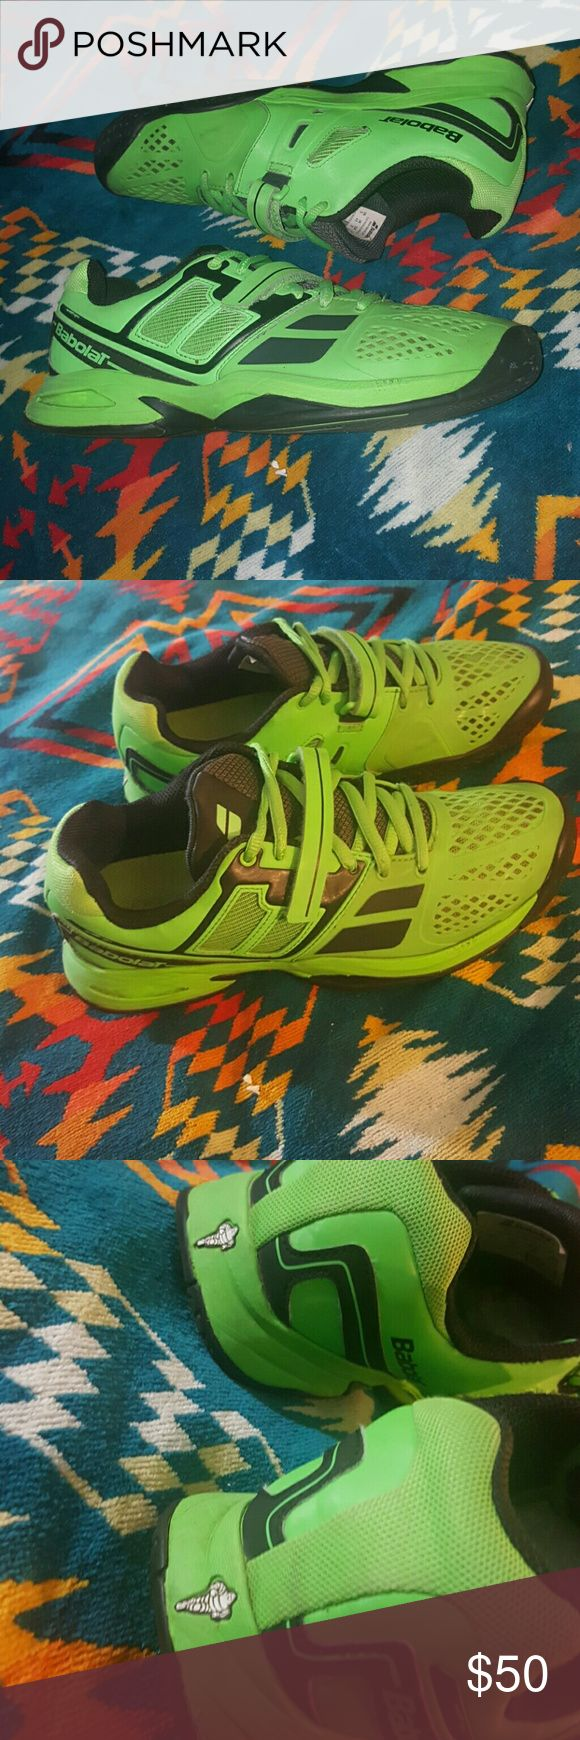 BABOLAT GREEN SNEAKERS US 5 EUR 37 Propulse all co TENNIS SHOES KIDS 5 babolat Shoes Sneakers